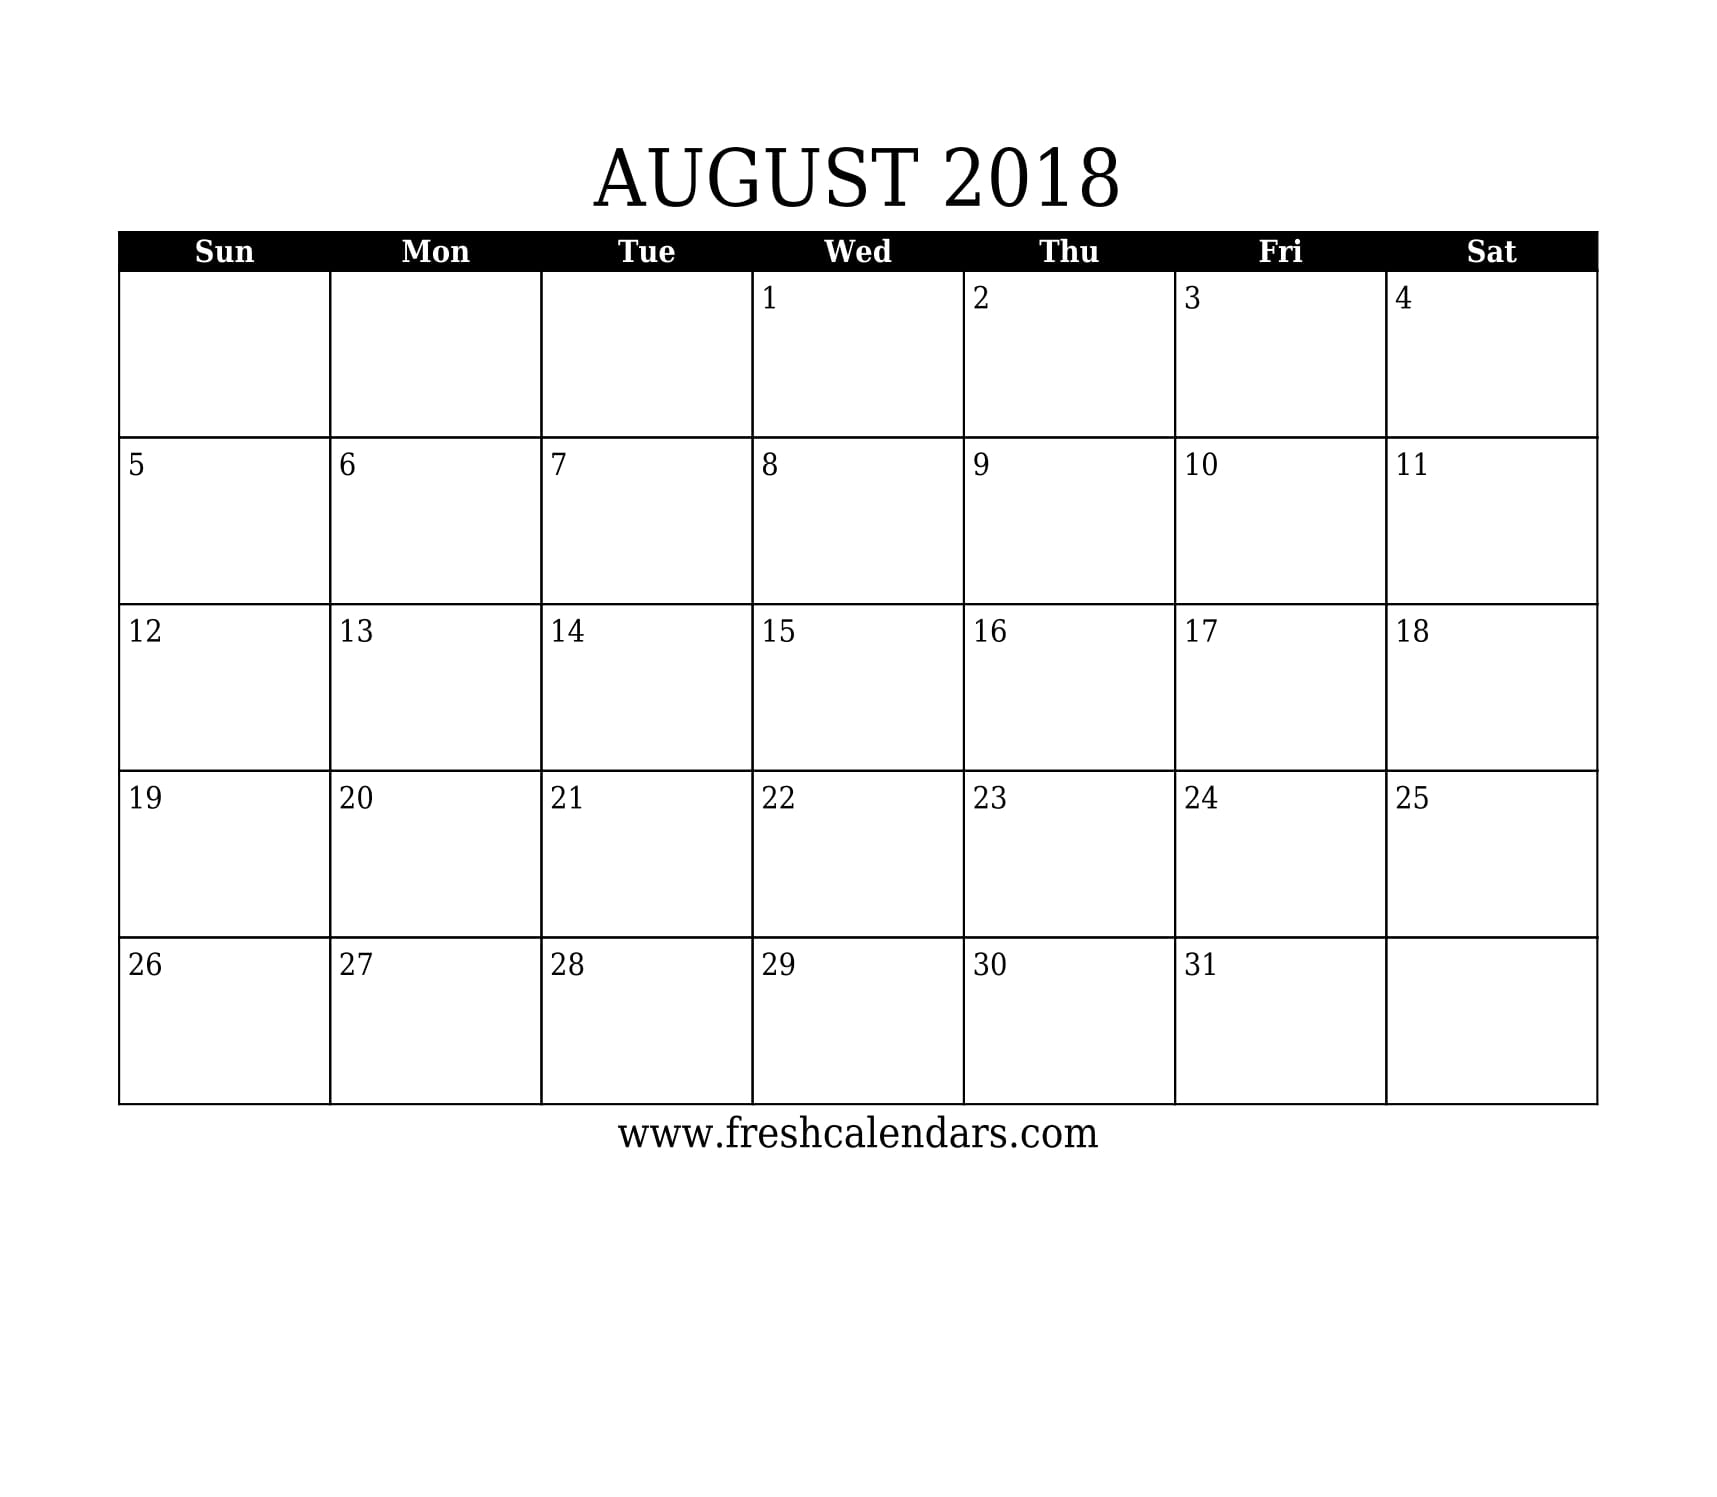 August 2018 Calendar Printable - Fresh Calendars throughout Monthly August Calander Template